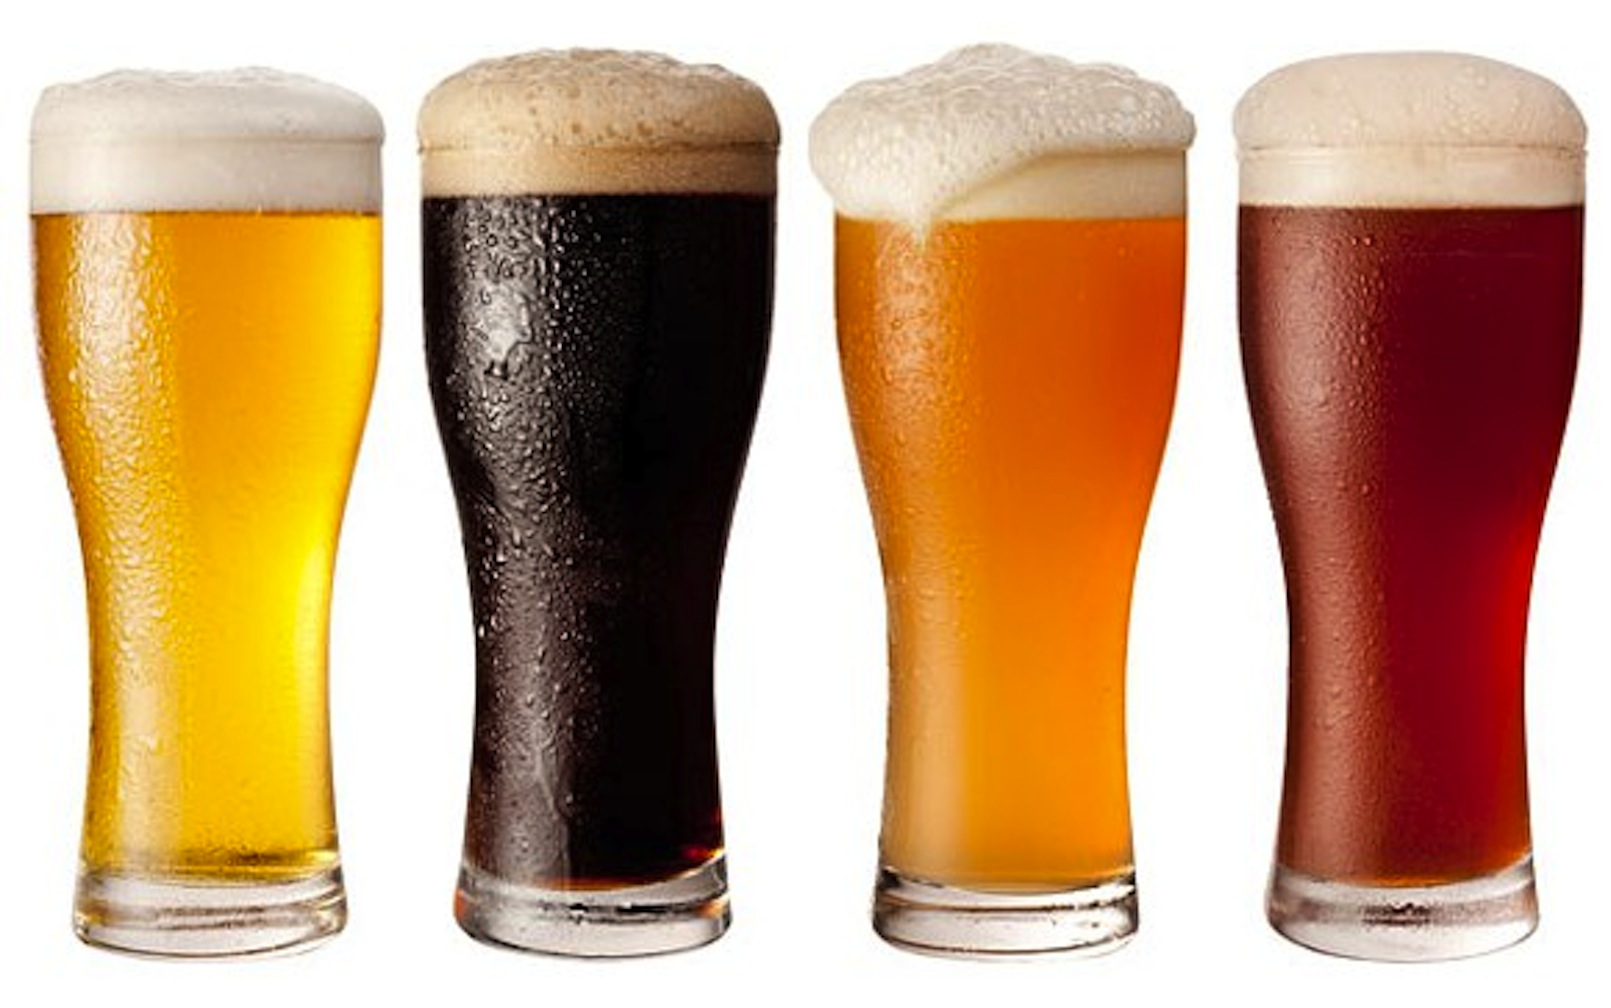 Types of Beer in Glasses